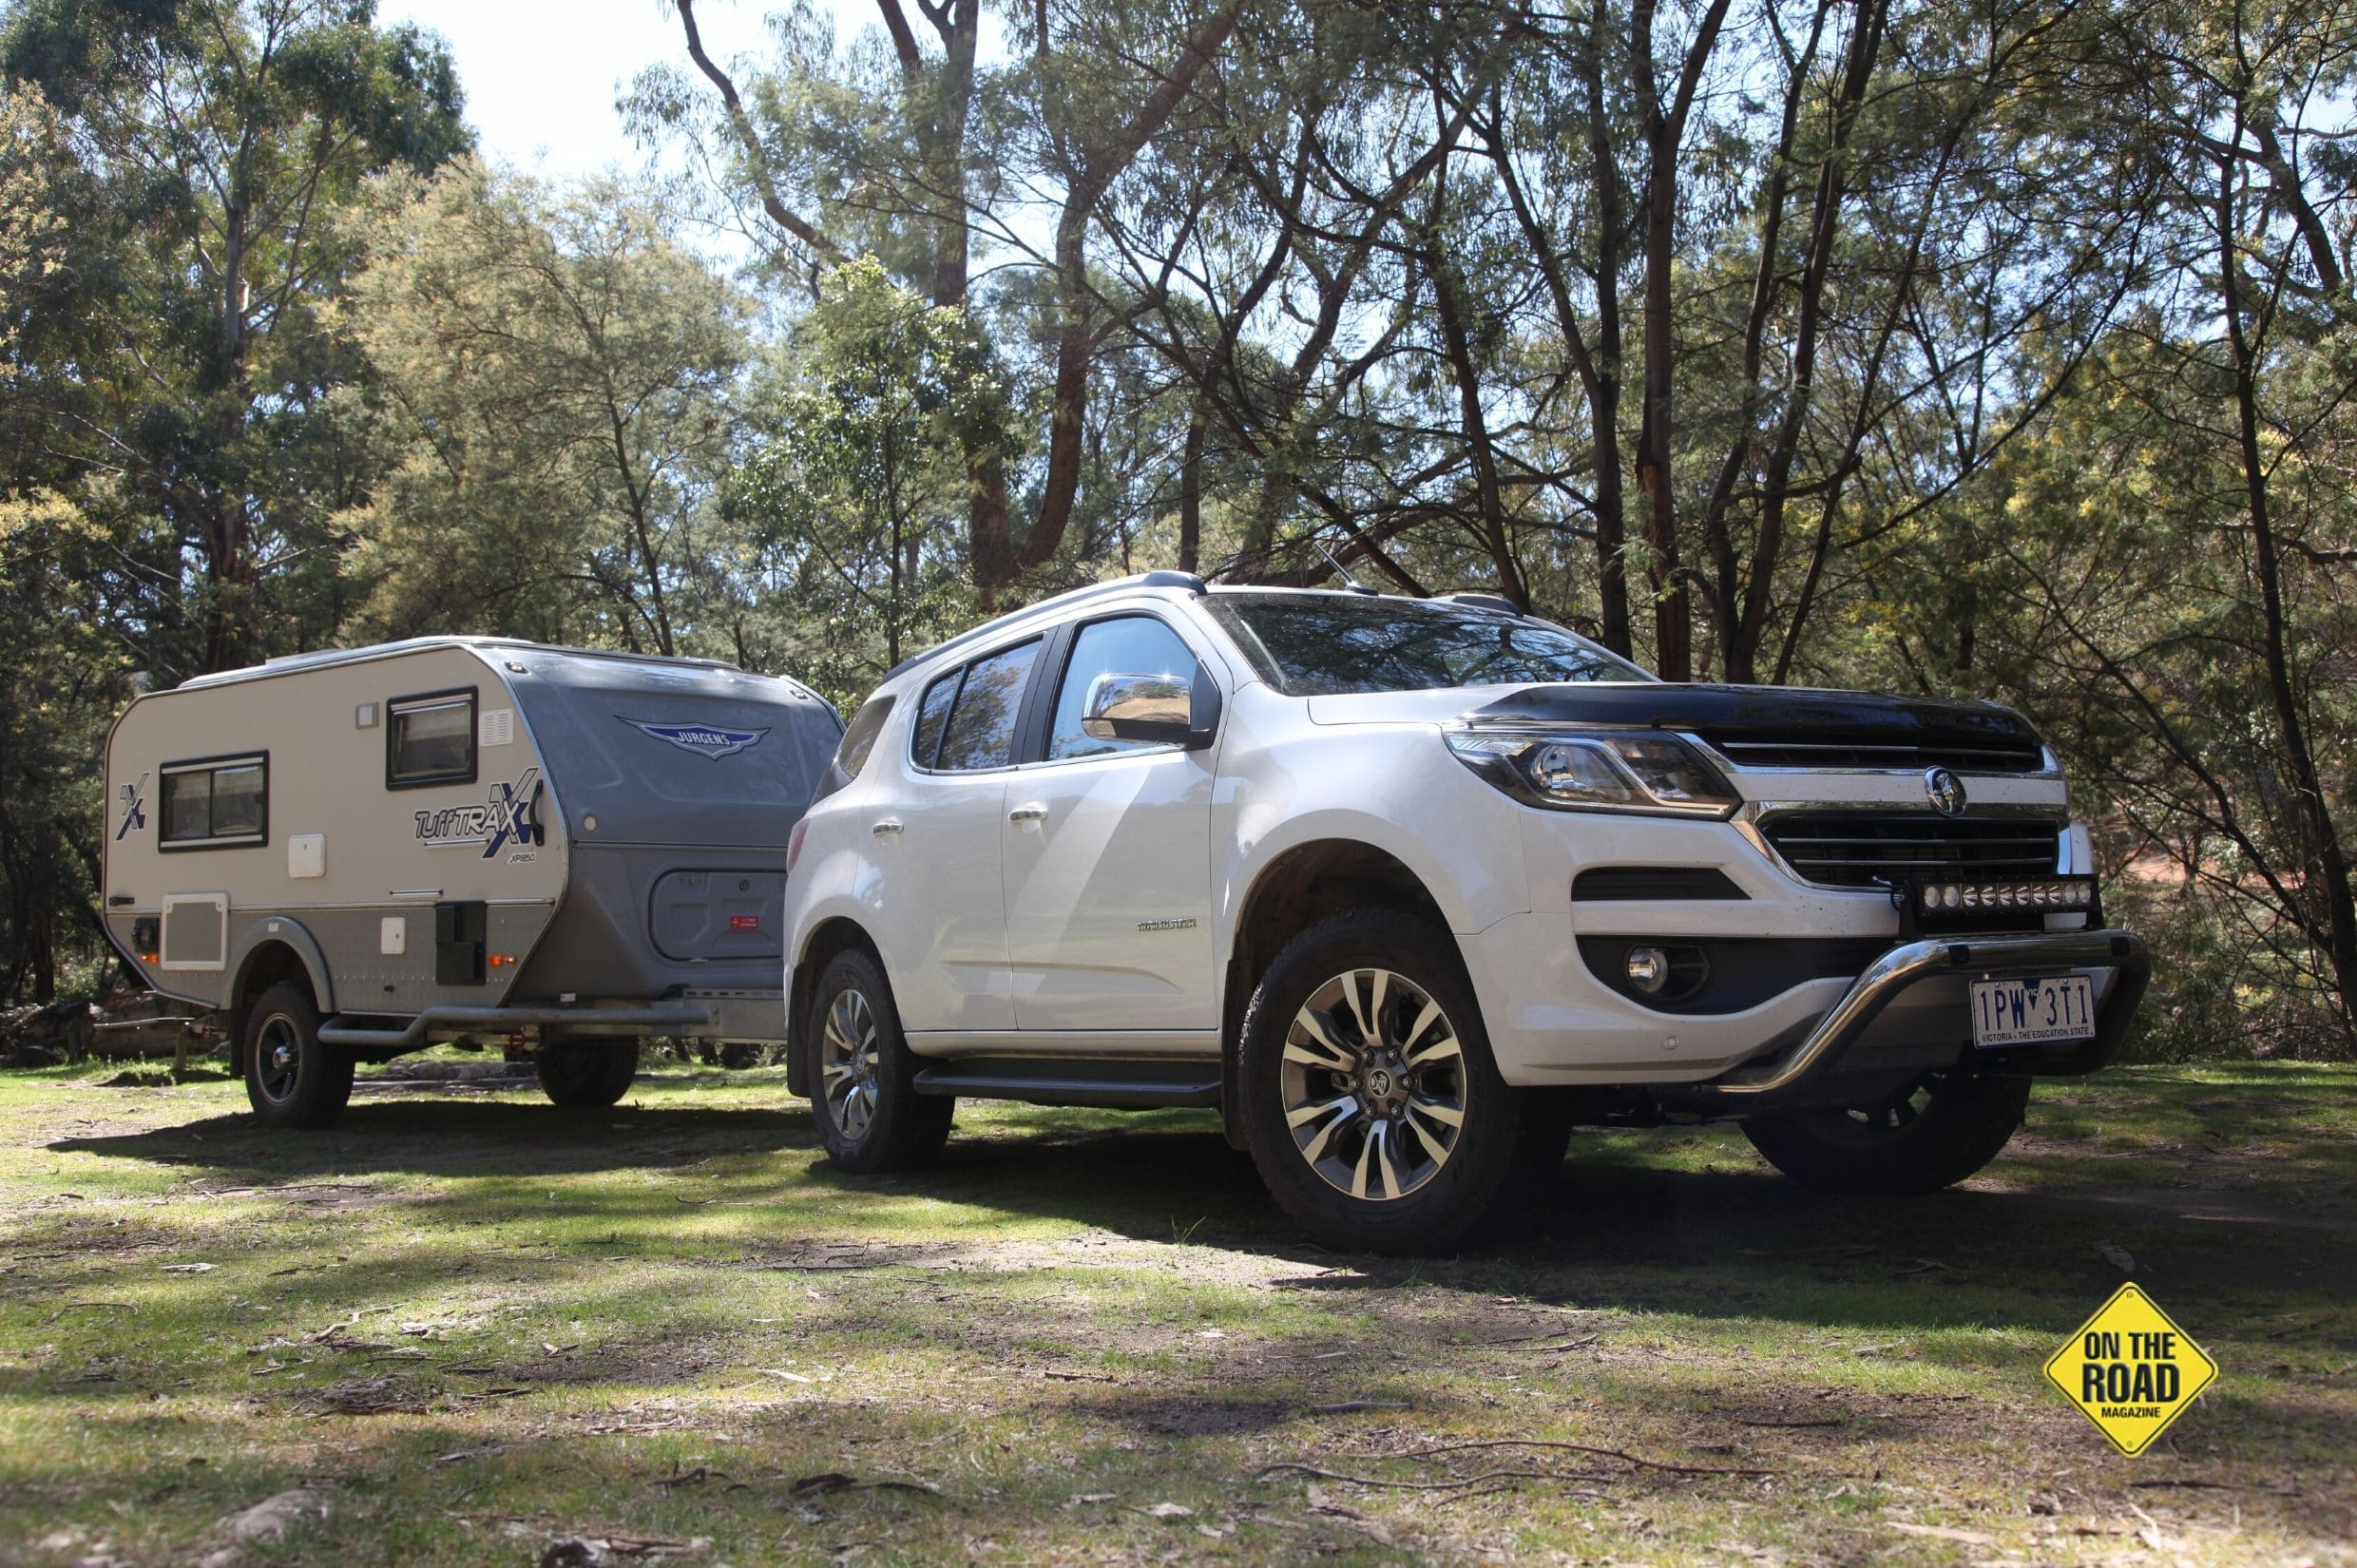 From all angles the Holden Trailblazer is a beautiful vehicle that will drive and tow well-min.